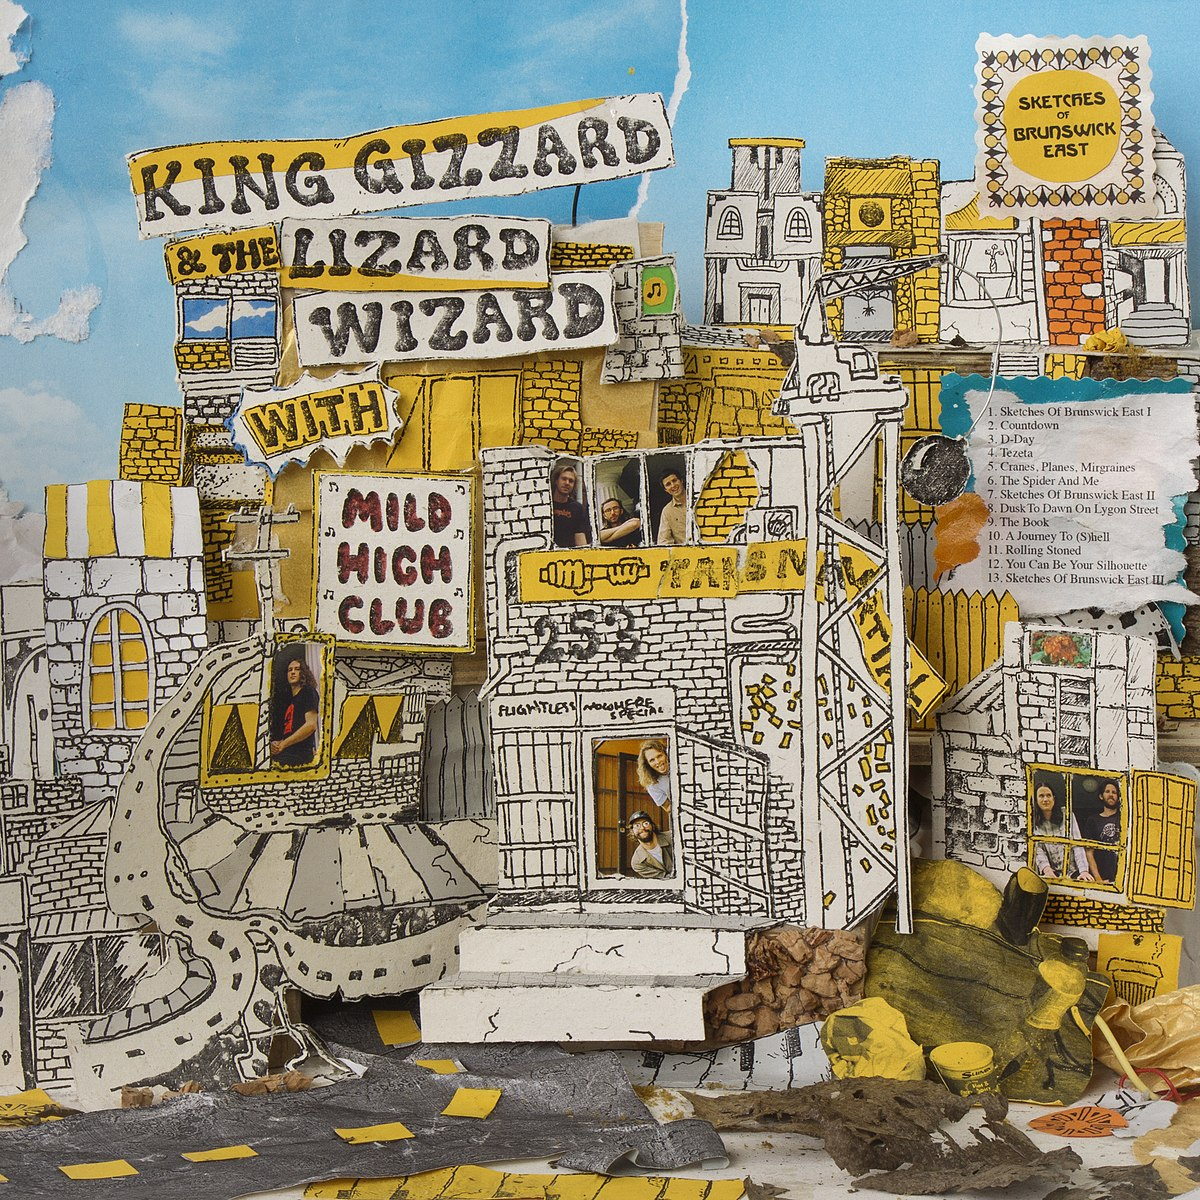 Cover KING GIZZARD & THE LIZARD WIZARD & MILD HIGH CLUB - Cranes, Planes, Migraines